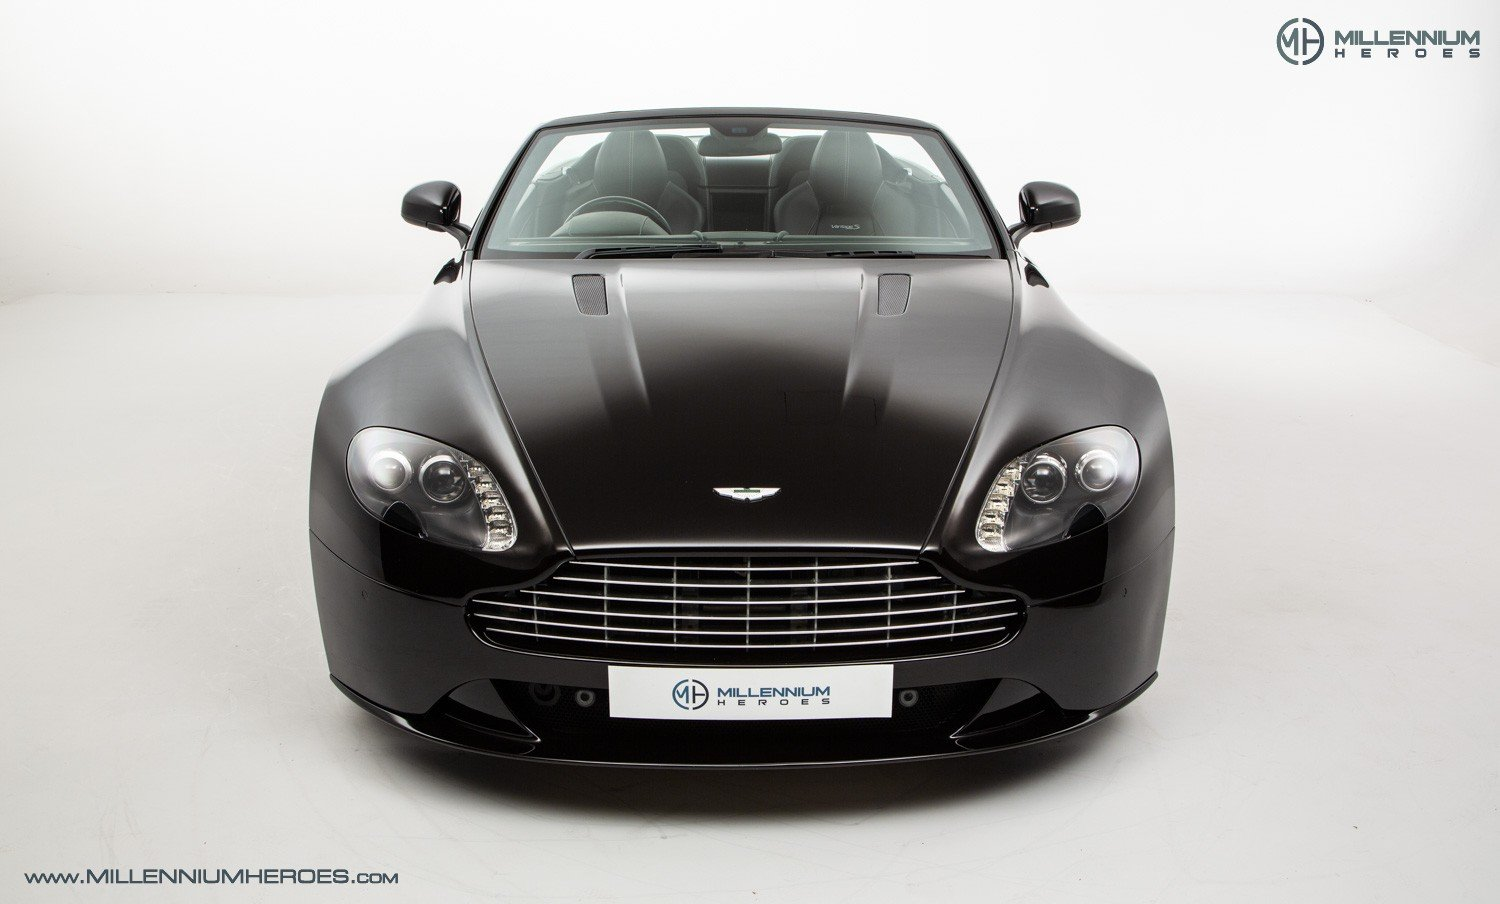 2013 ASTON MARTIN V8 VANTAGE S // AM WARRANTY // FULL AM HISTORY  For Sale (picture 3 of 23)